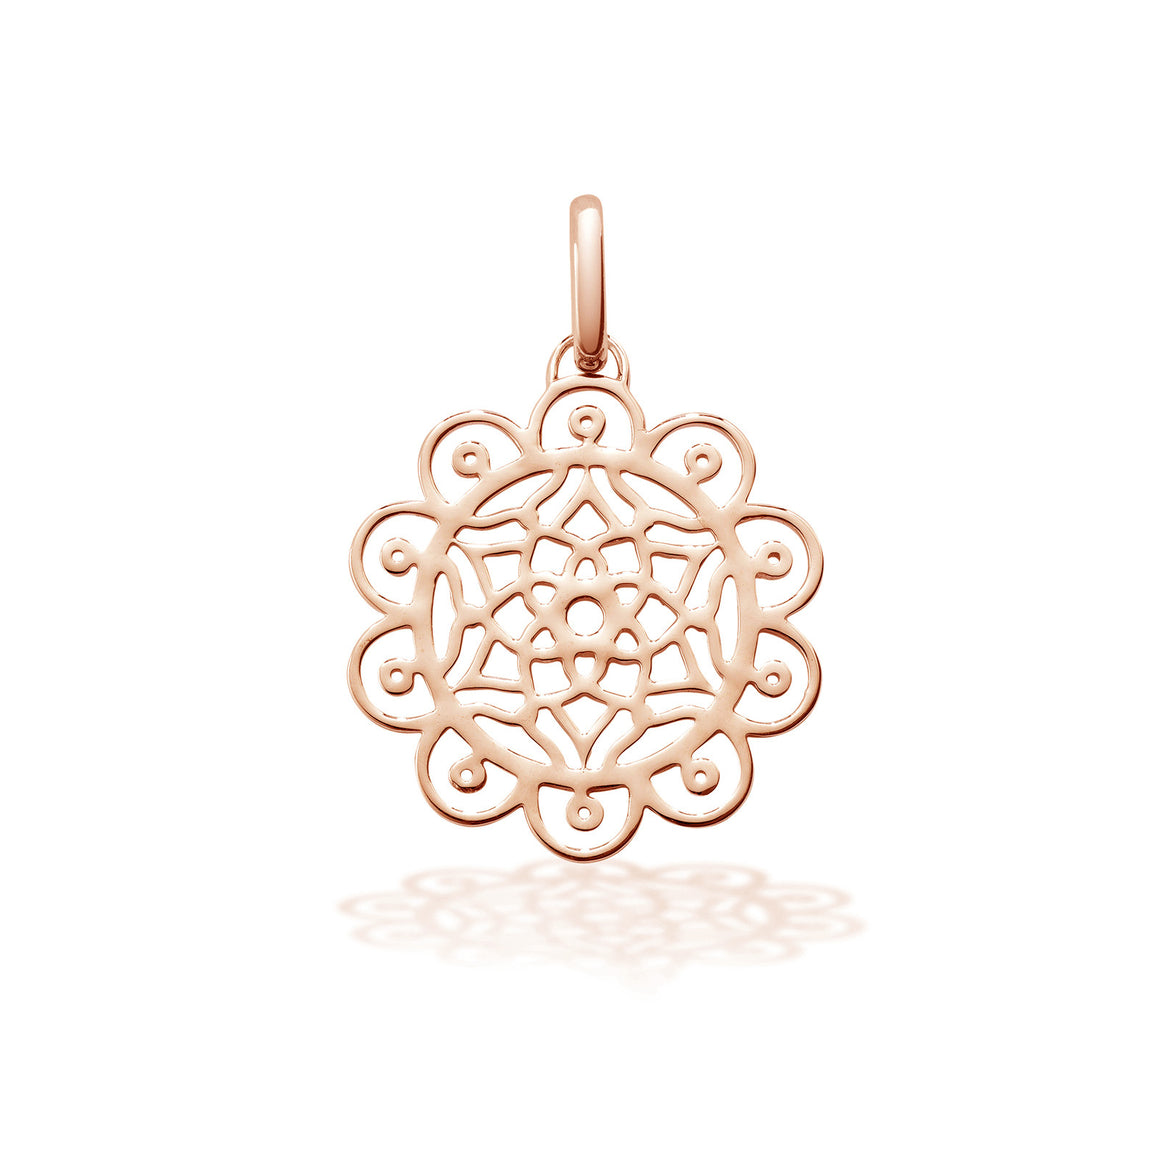 Dreamcatcher charm in Silver with 18ct Rose gold vermeil by OAK Jewellery